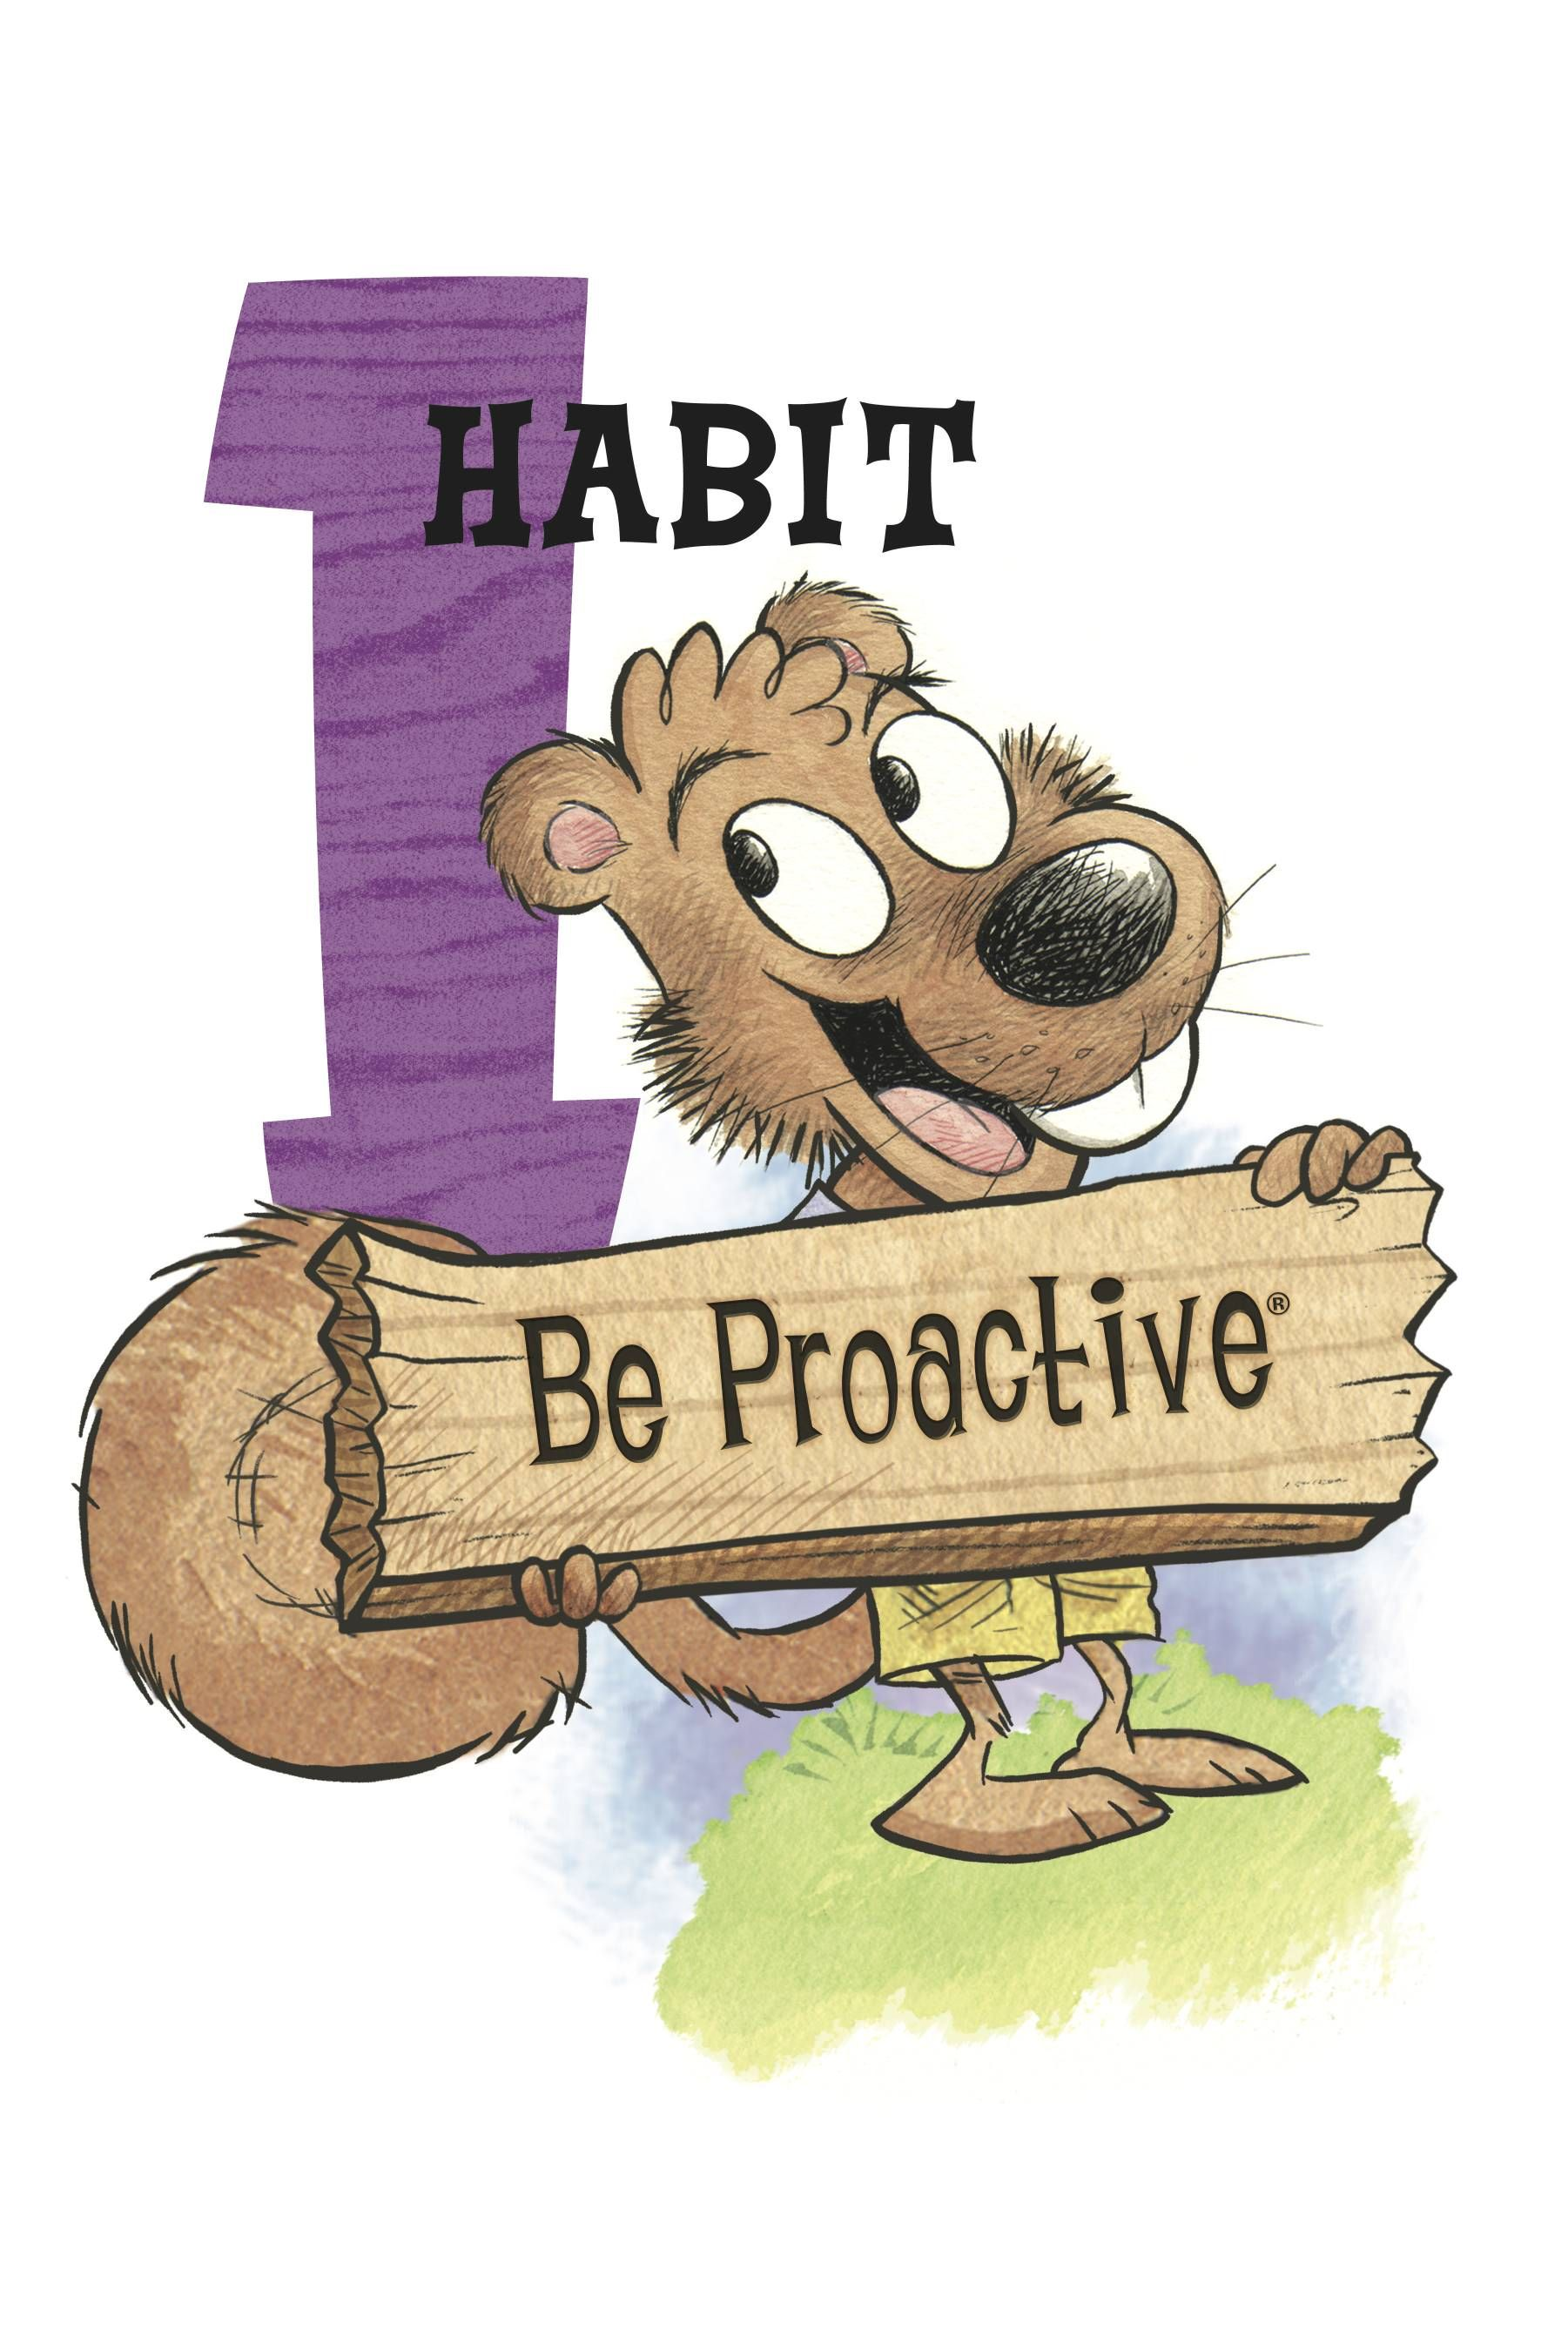 Habit 1 Be Proactive